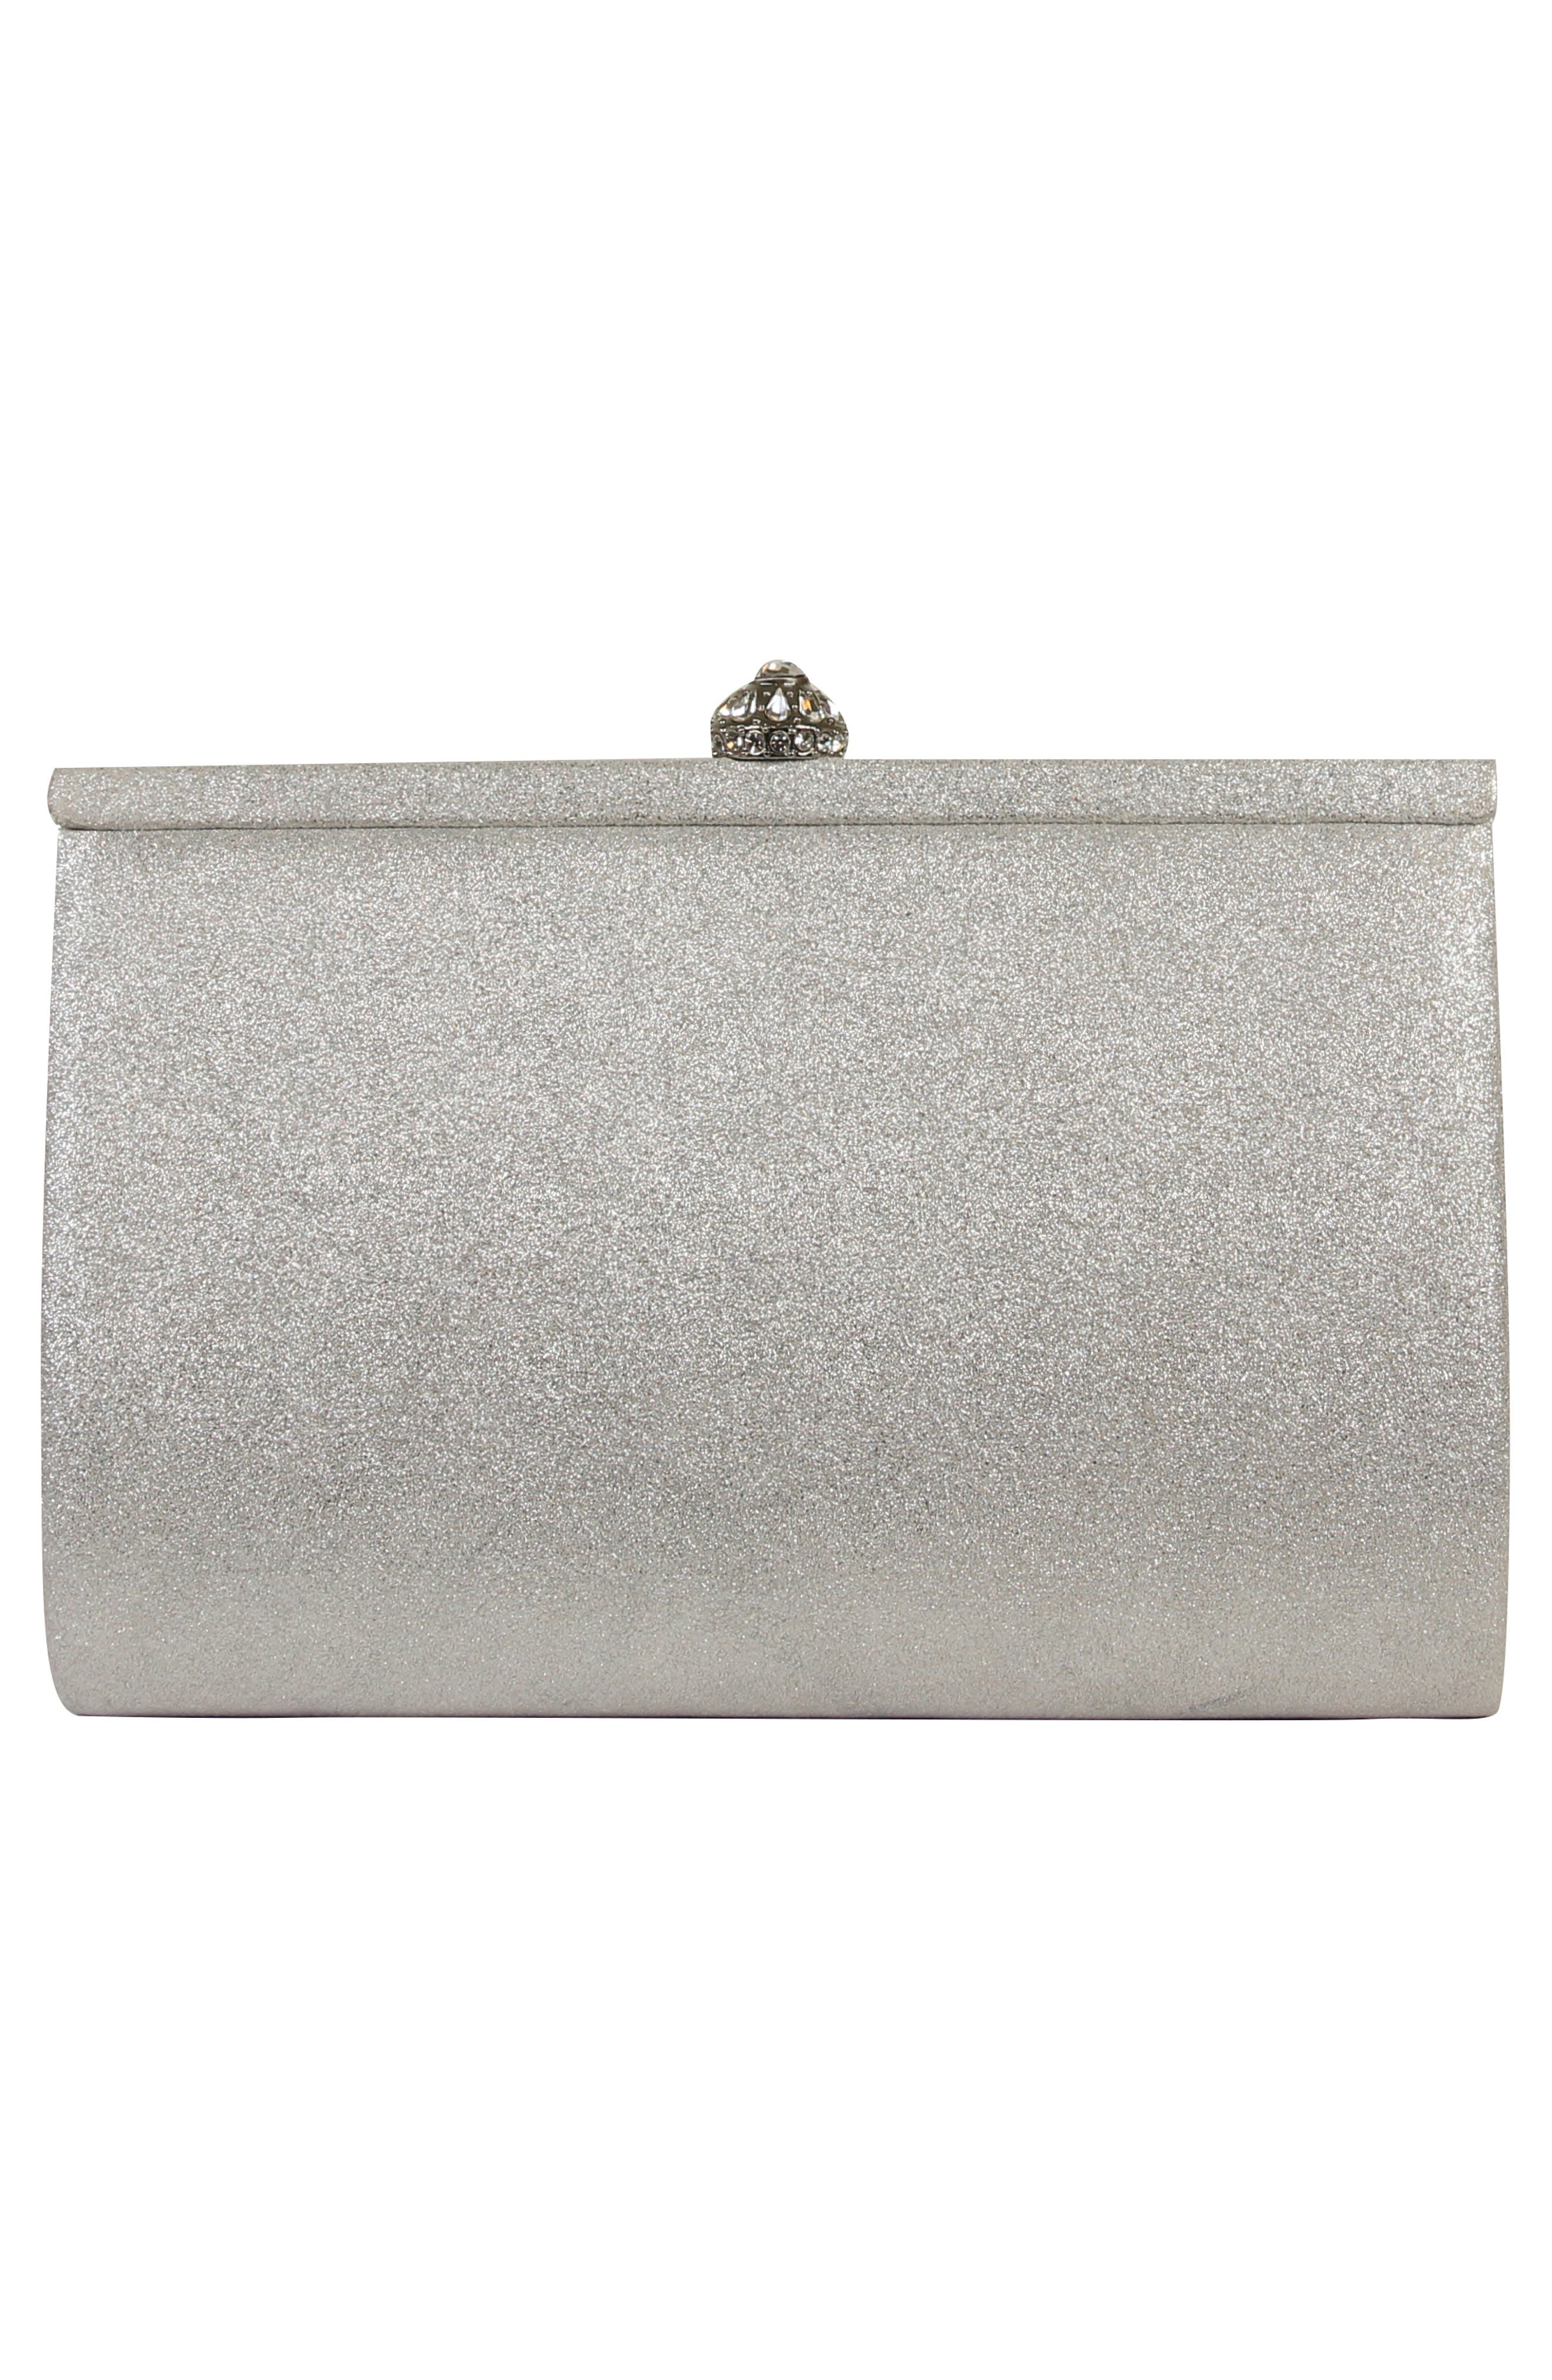 Galaxy Embellished Clutch,                             Alternate thumbnail 2, color,                             040